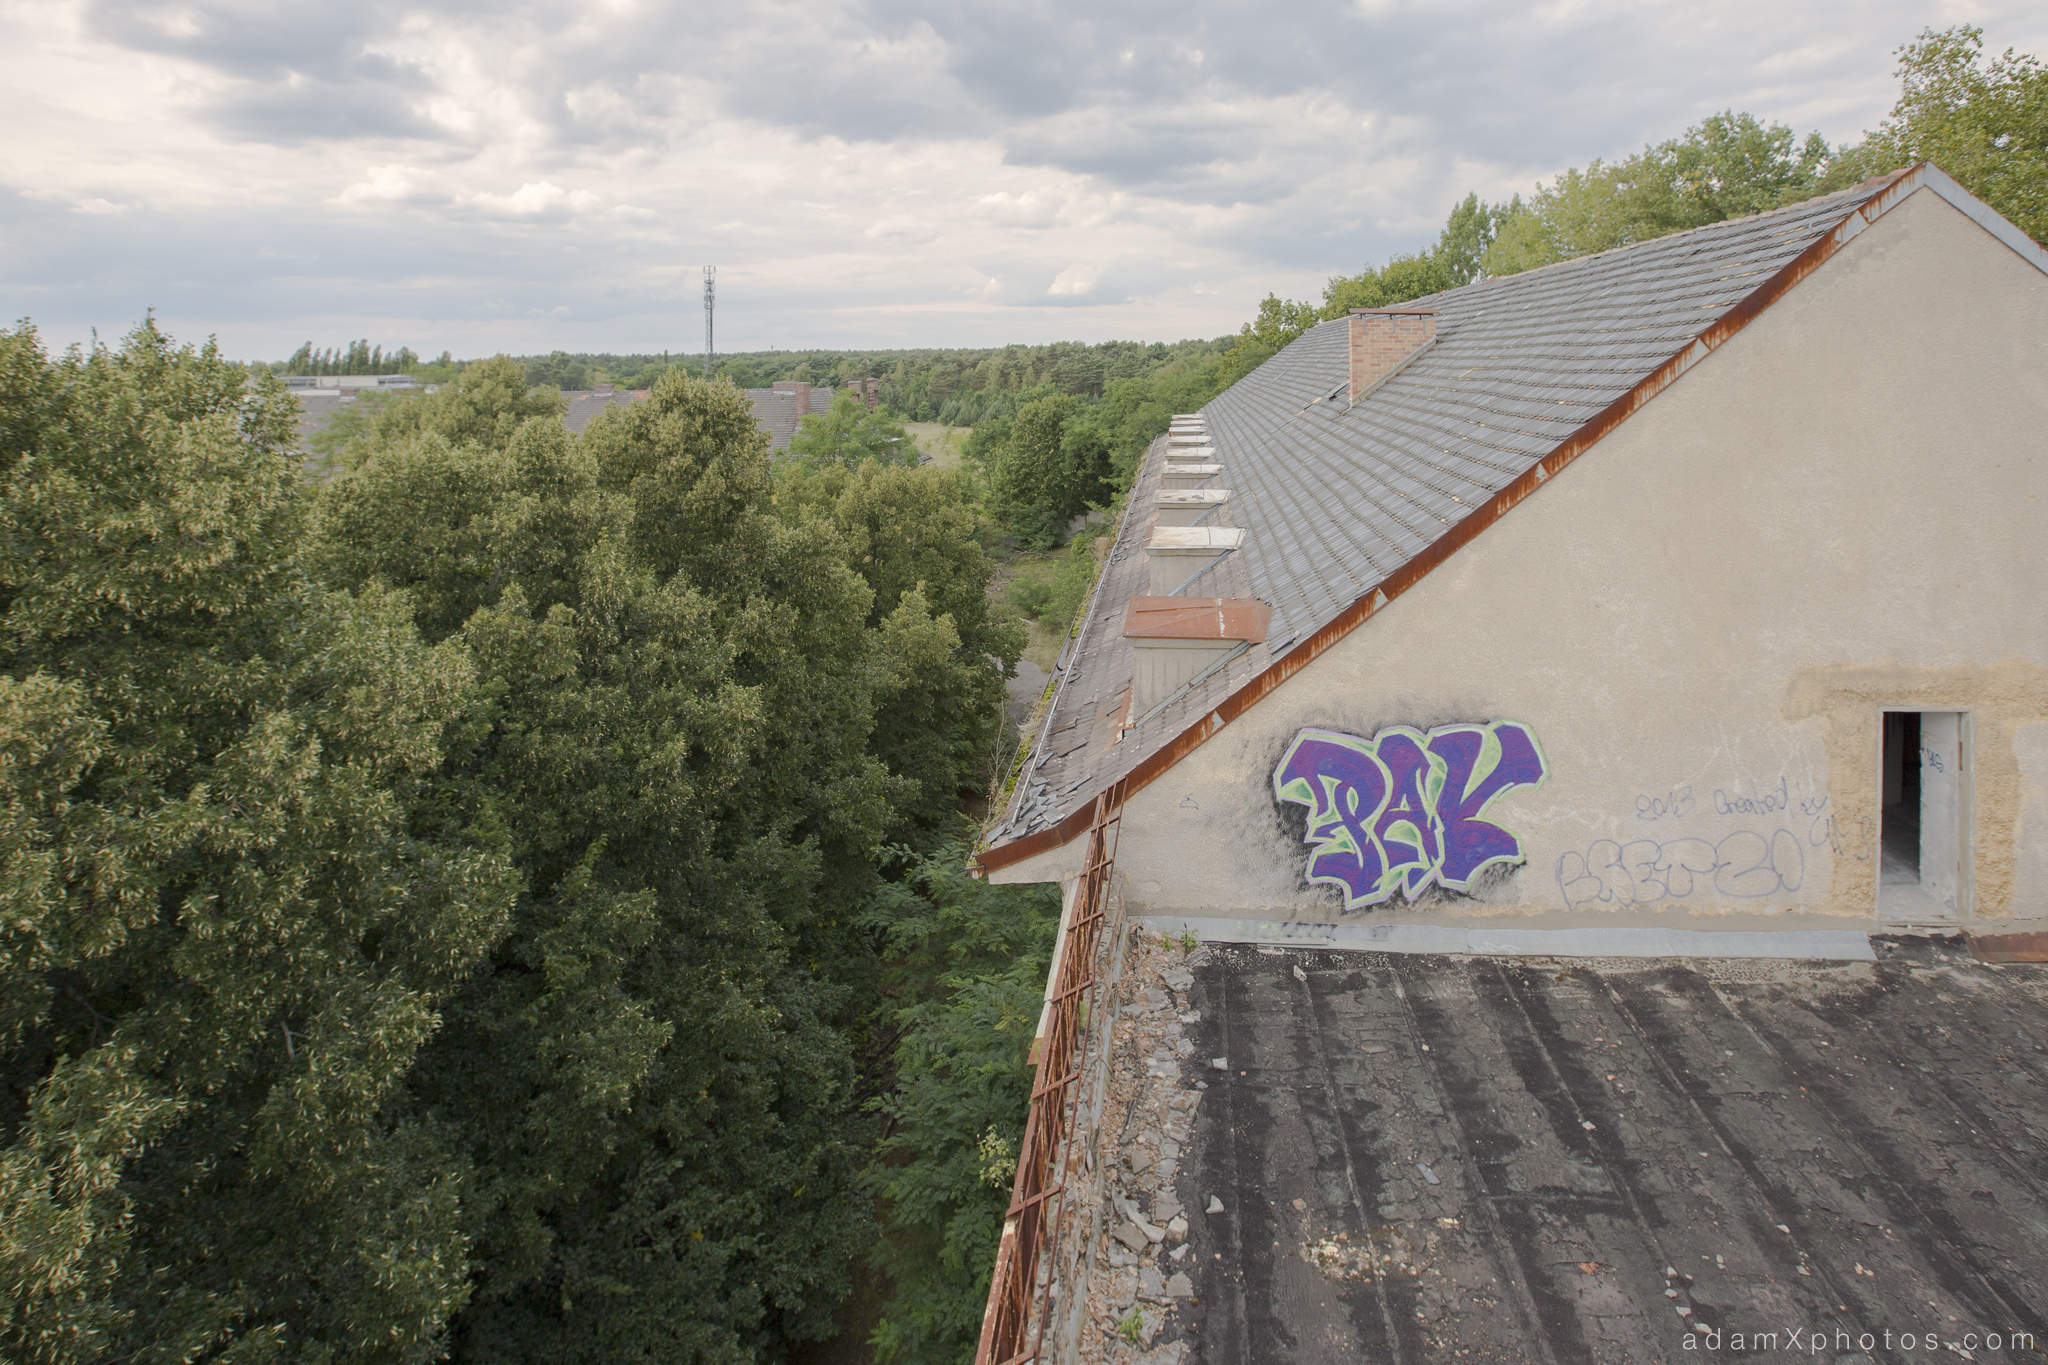 Adam X Urbex Urban Exploration Abandoned Germany Wunsdorf barracks roof external view